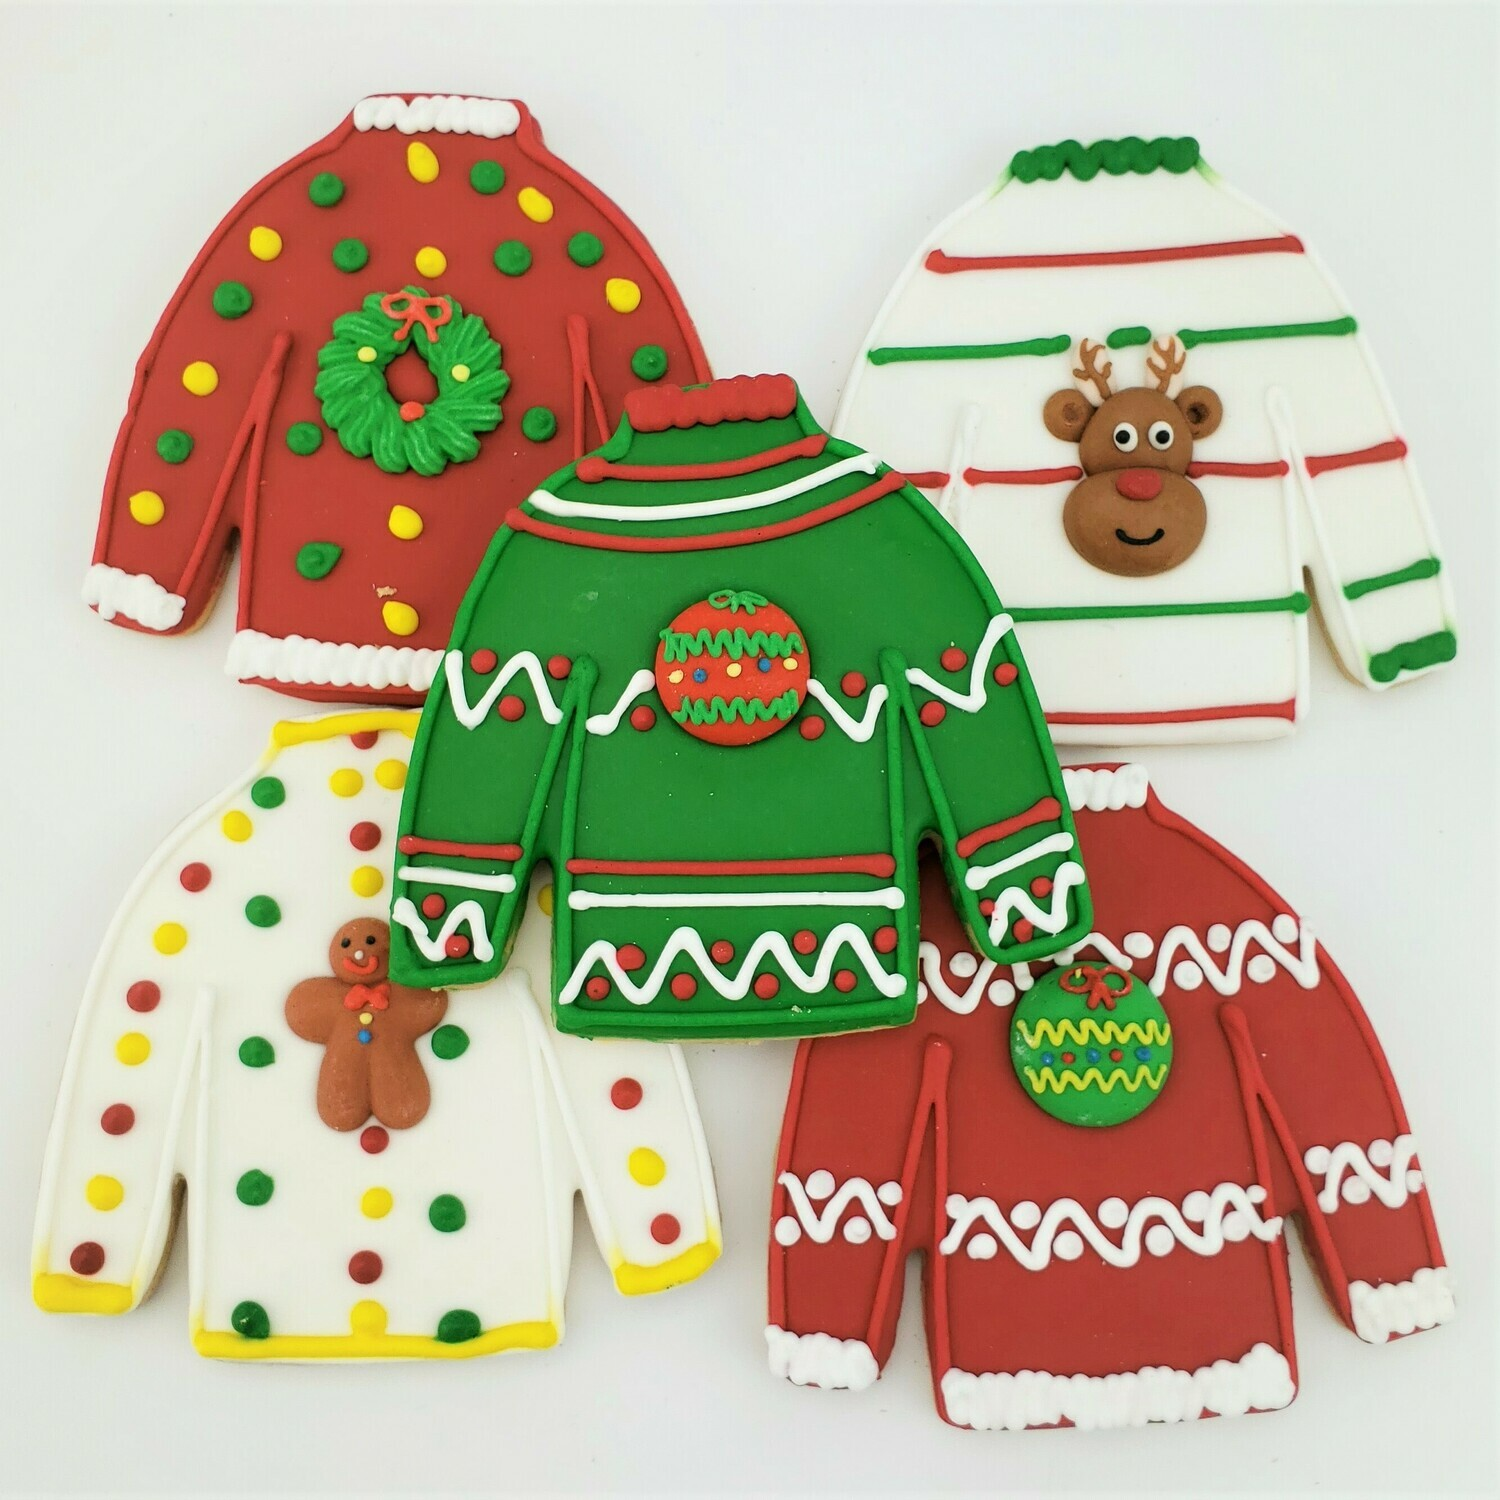 Ugly Sweater Iced Cookies Assortment